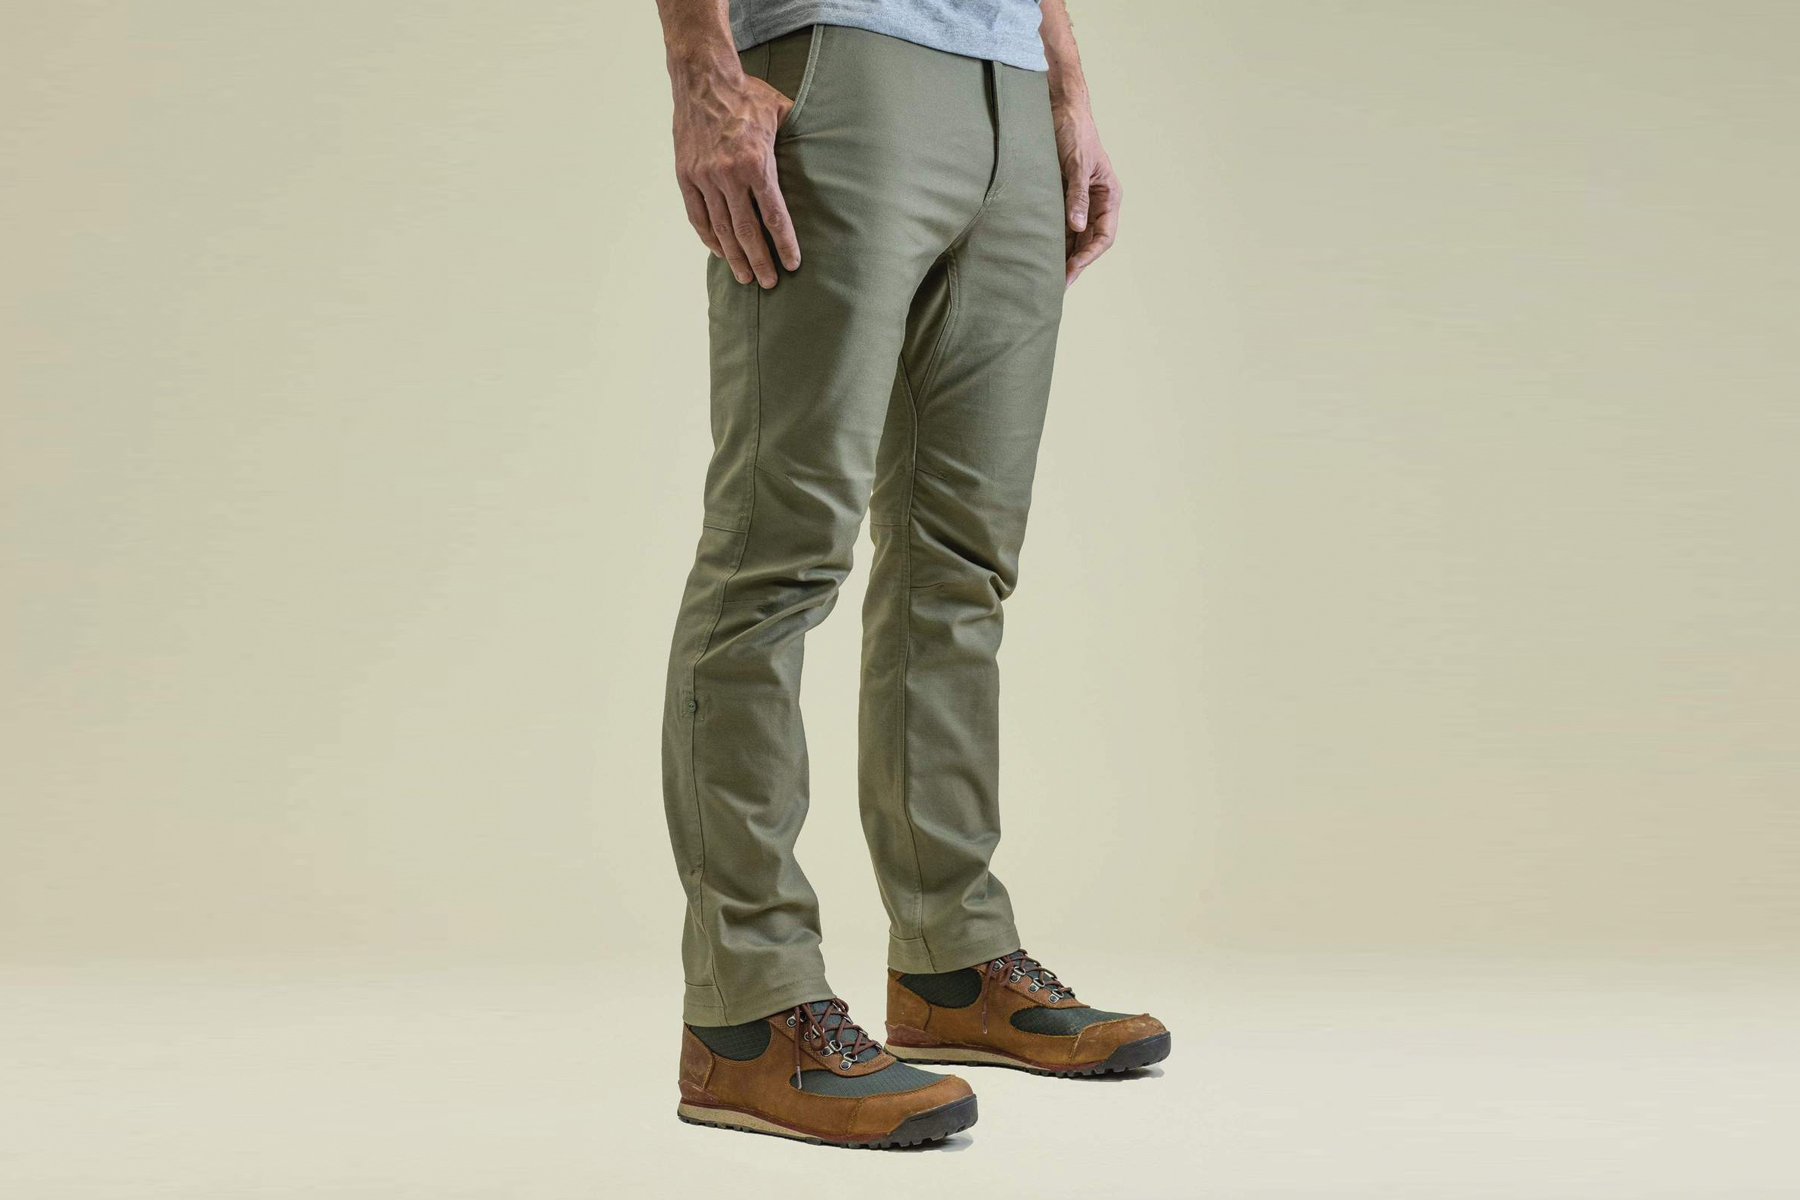 Olive Flex Canvas Pants being modeled by a man